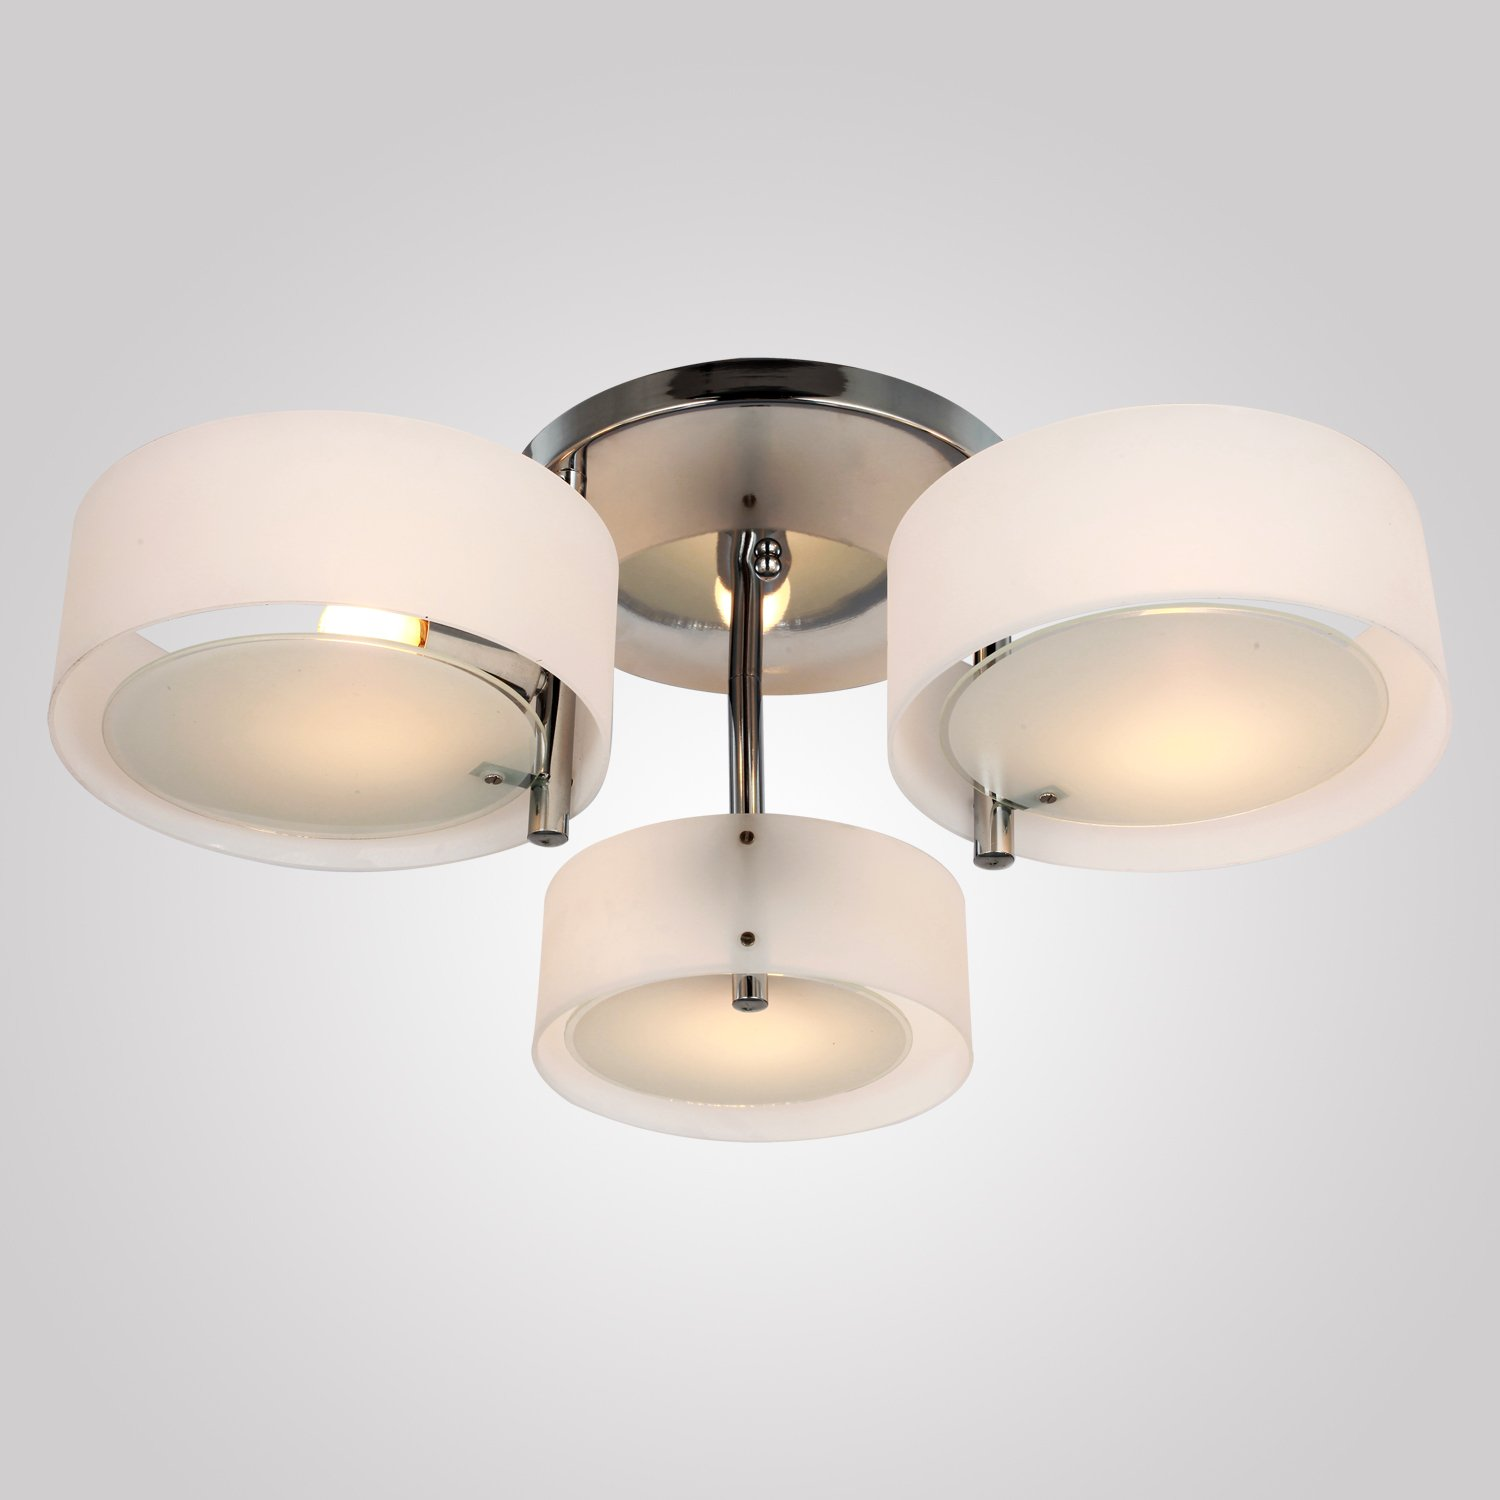 lightinthebox chandelier modern living  lights modern home  - lightinthebox chandelier modern living  lights modern home ceiling lightfixture flush mount pendant light chandeliers lighting amazonca home